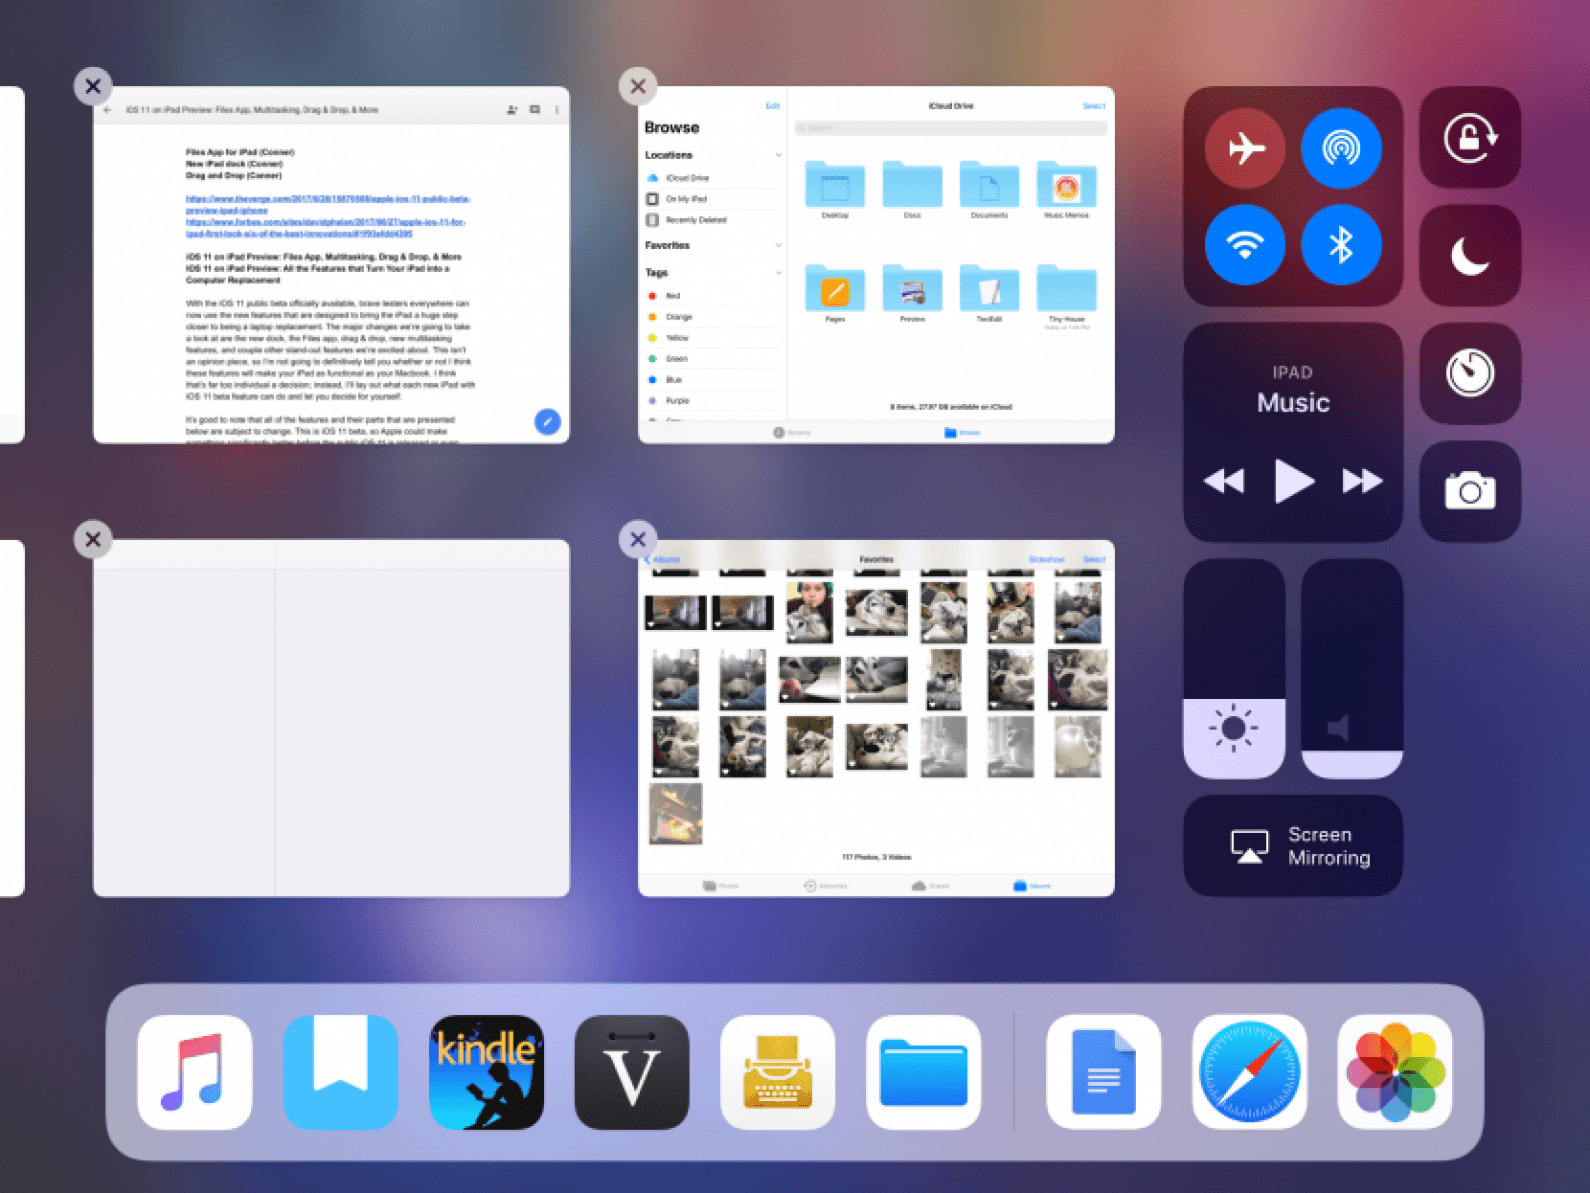 iOS 11 on iPad Preview: Files App, Multitasking, Drag & Drop, and